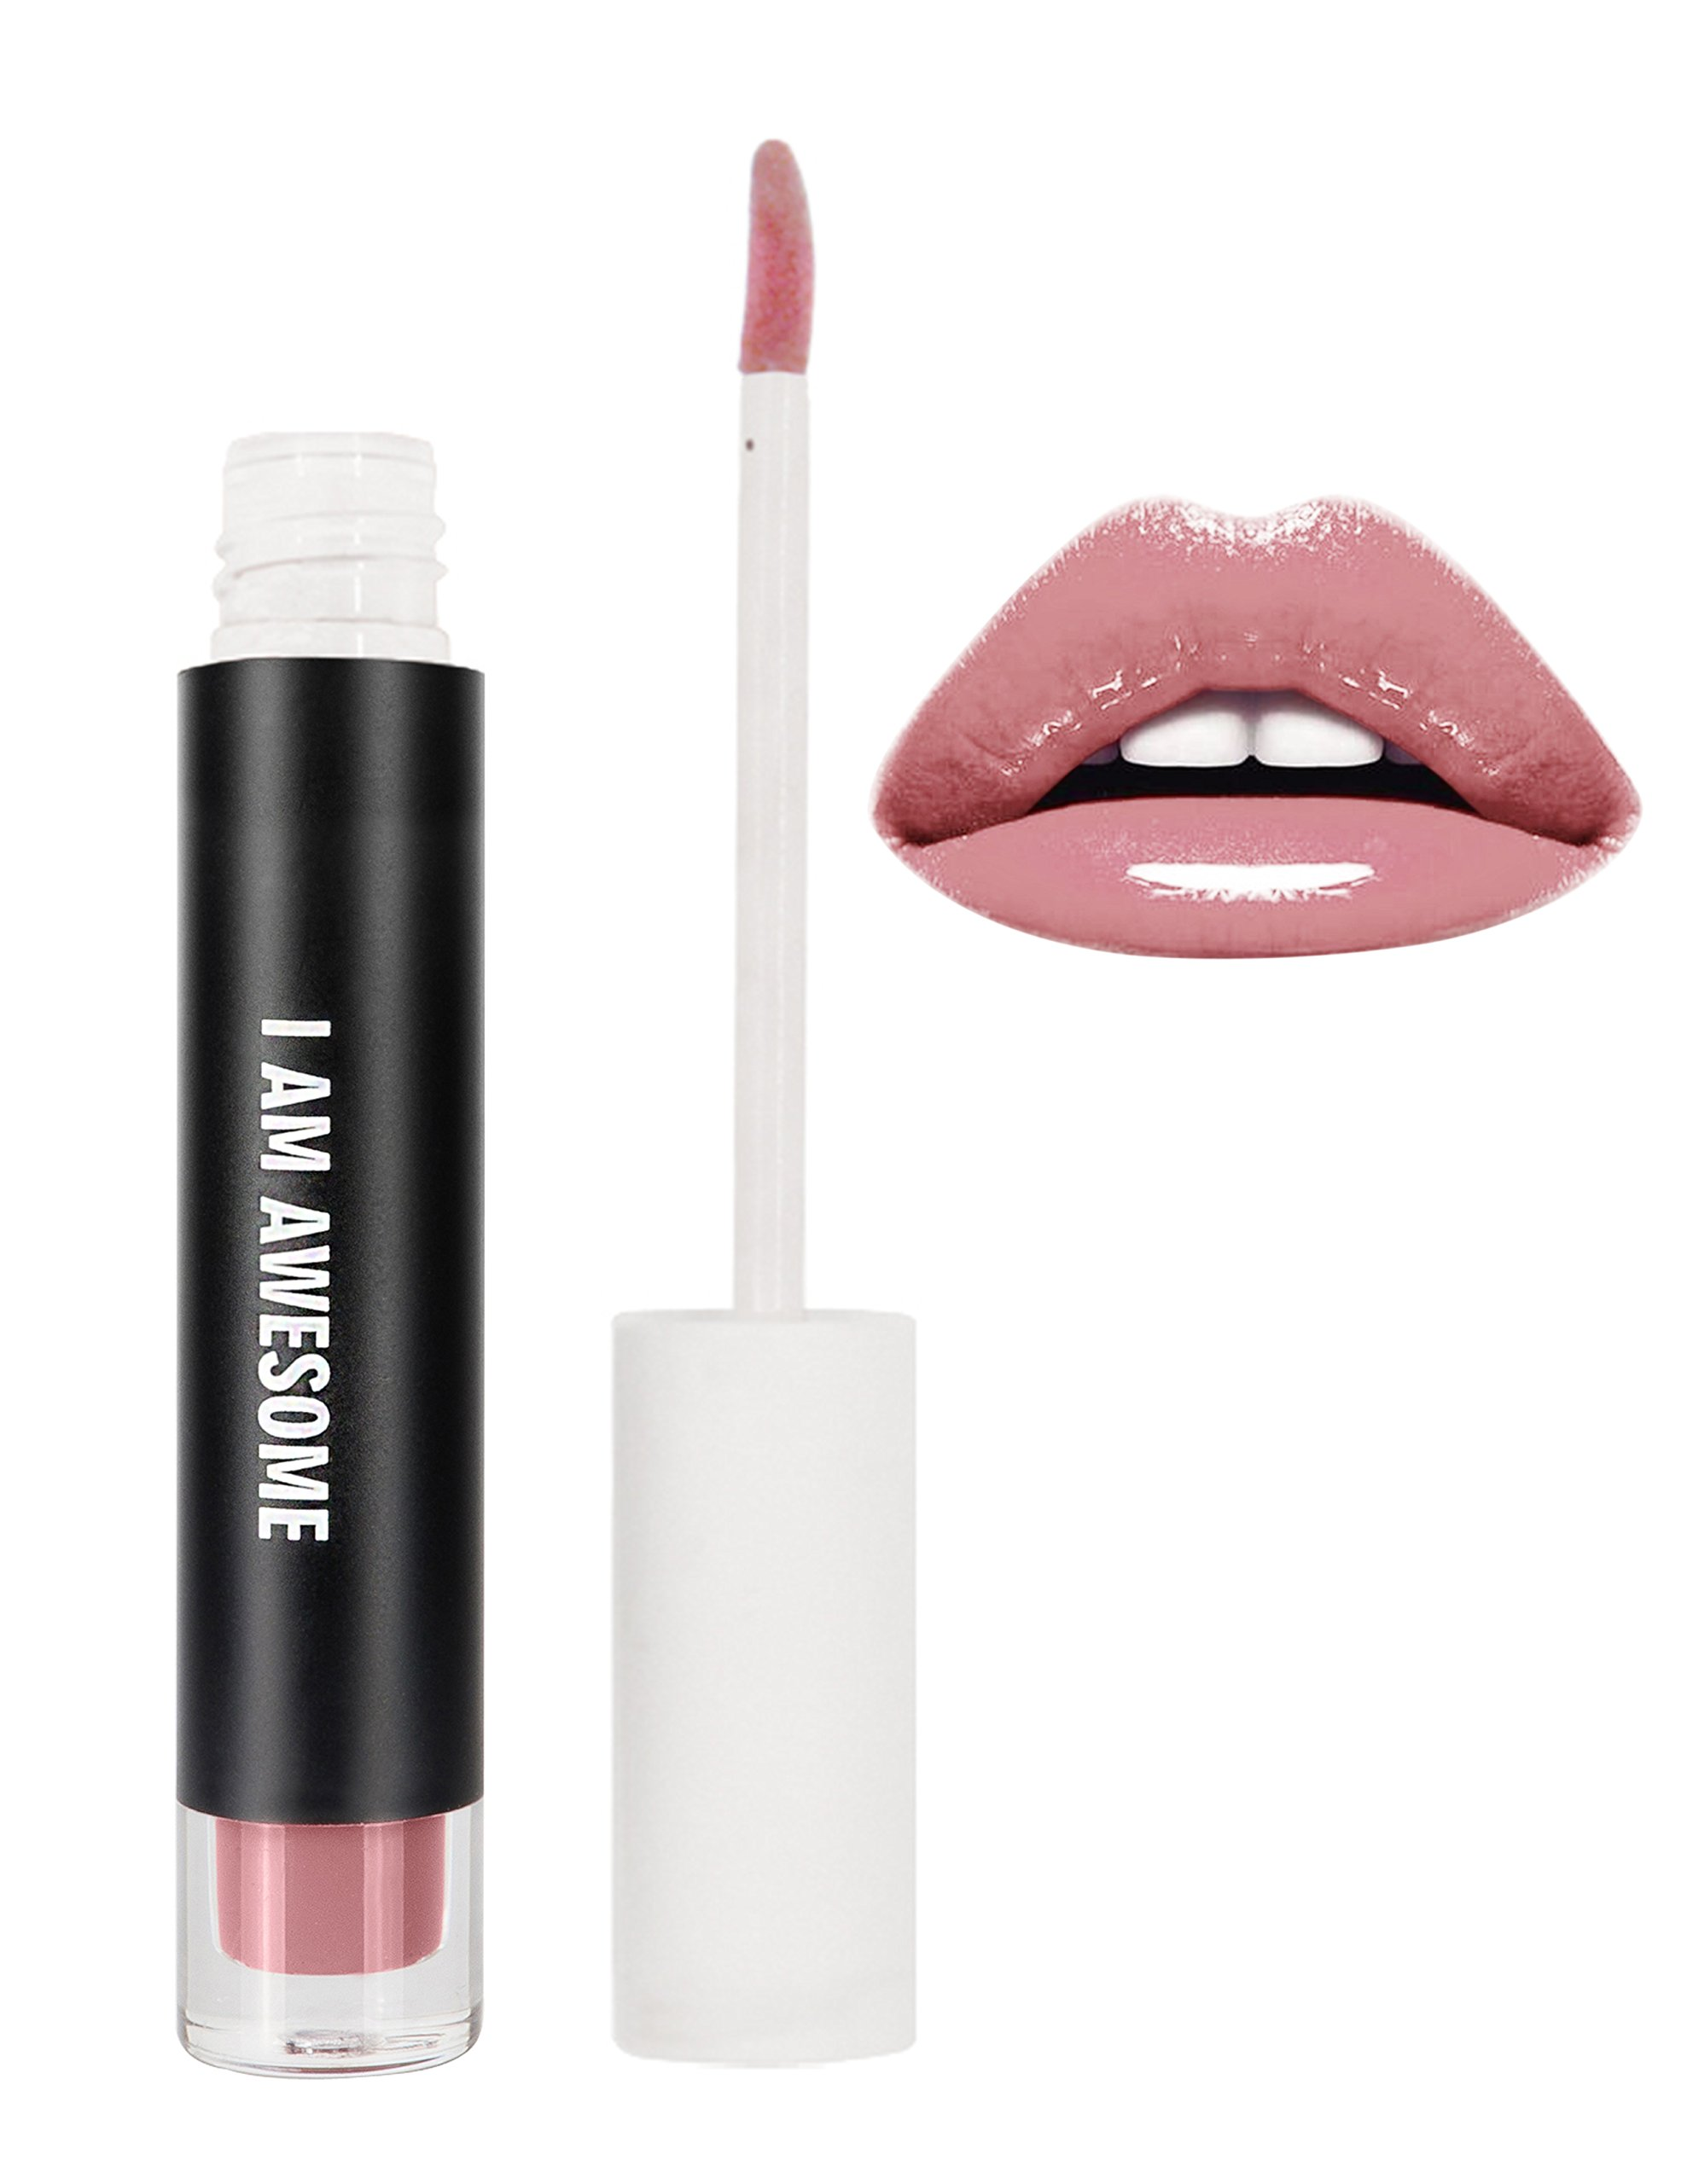 RealHer I Am Awesome Deep Nude- Lip Plumping Gloss, Shiny Finish, Fuller Lip Volume! No Pain Formula.